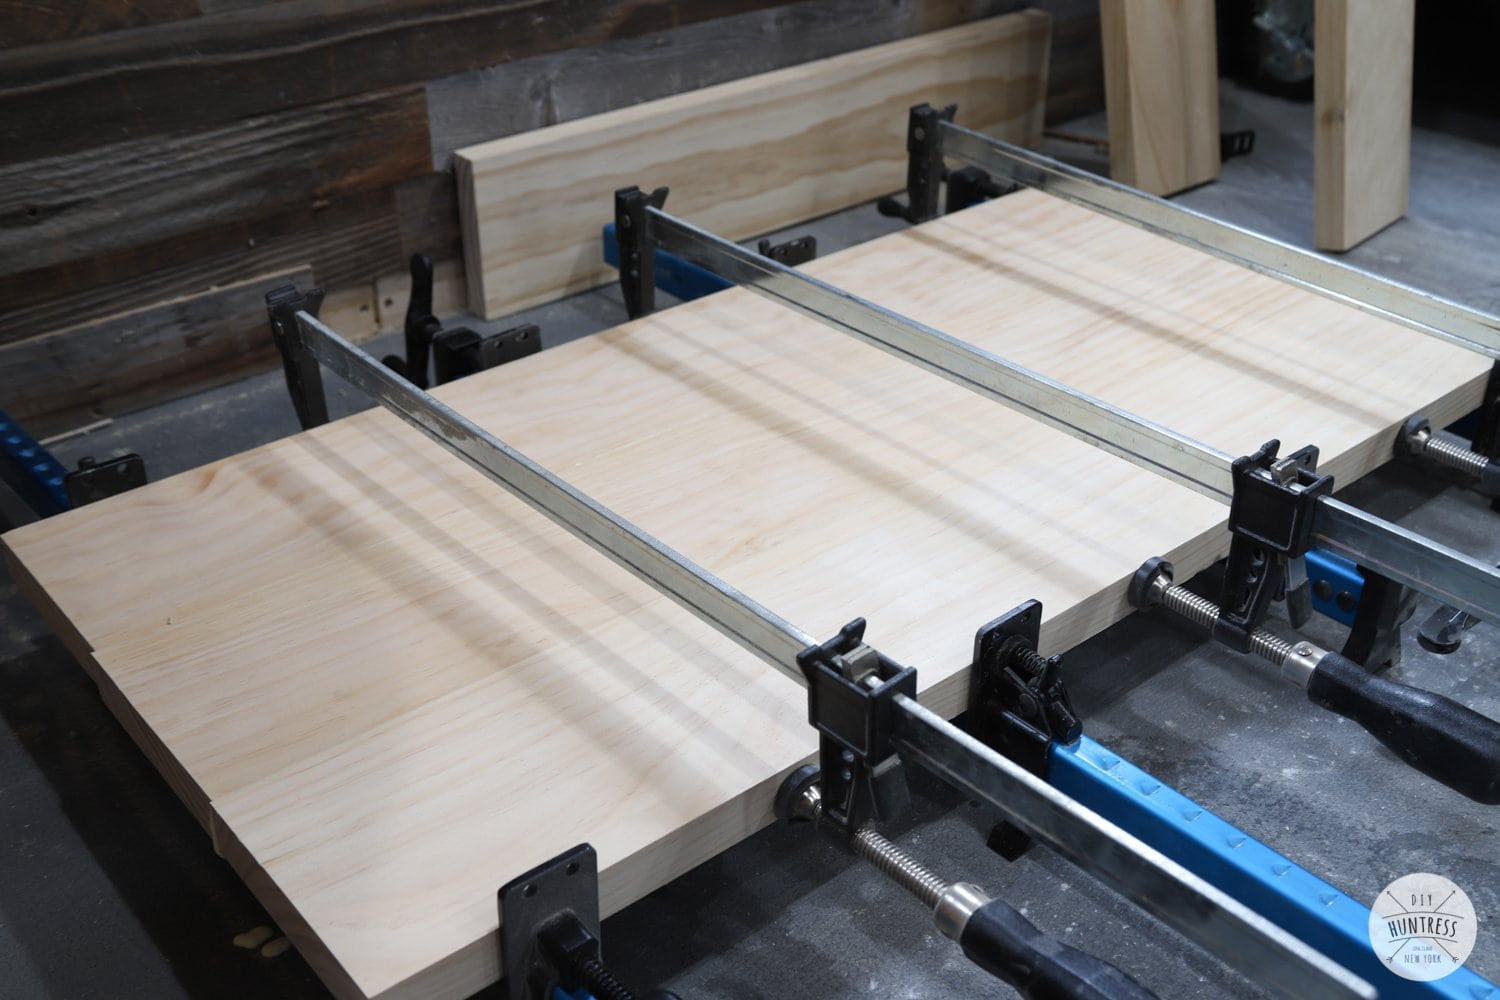 gluing up desk top panels